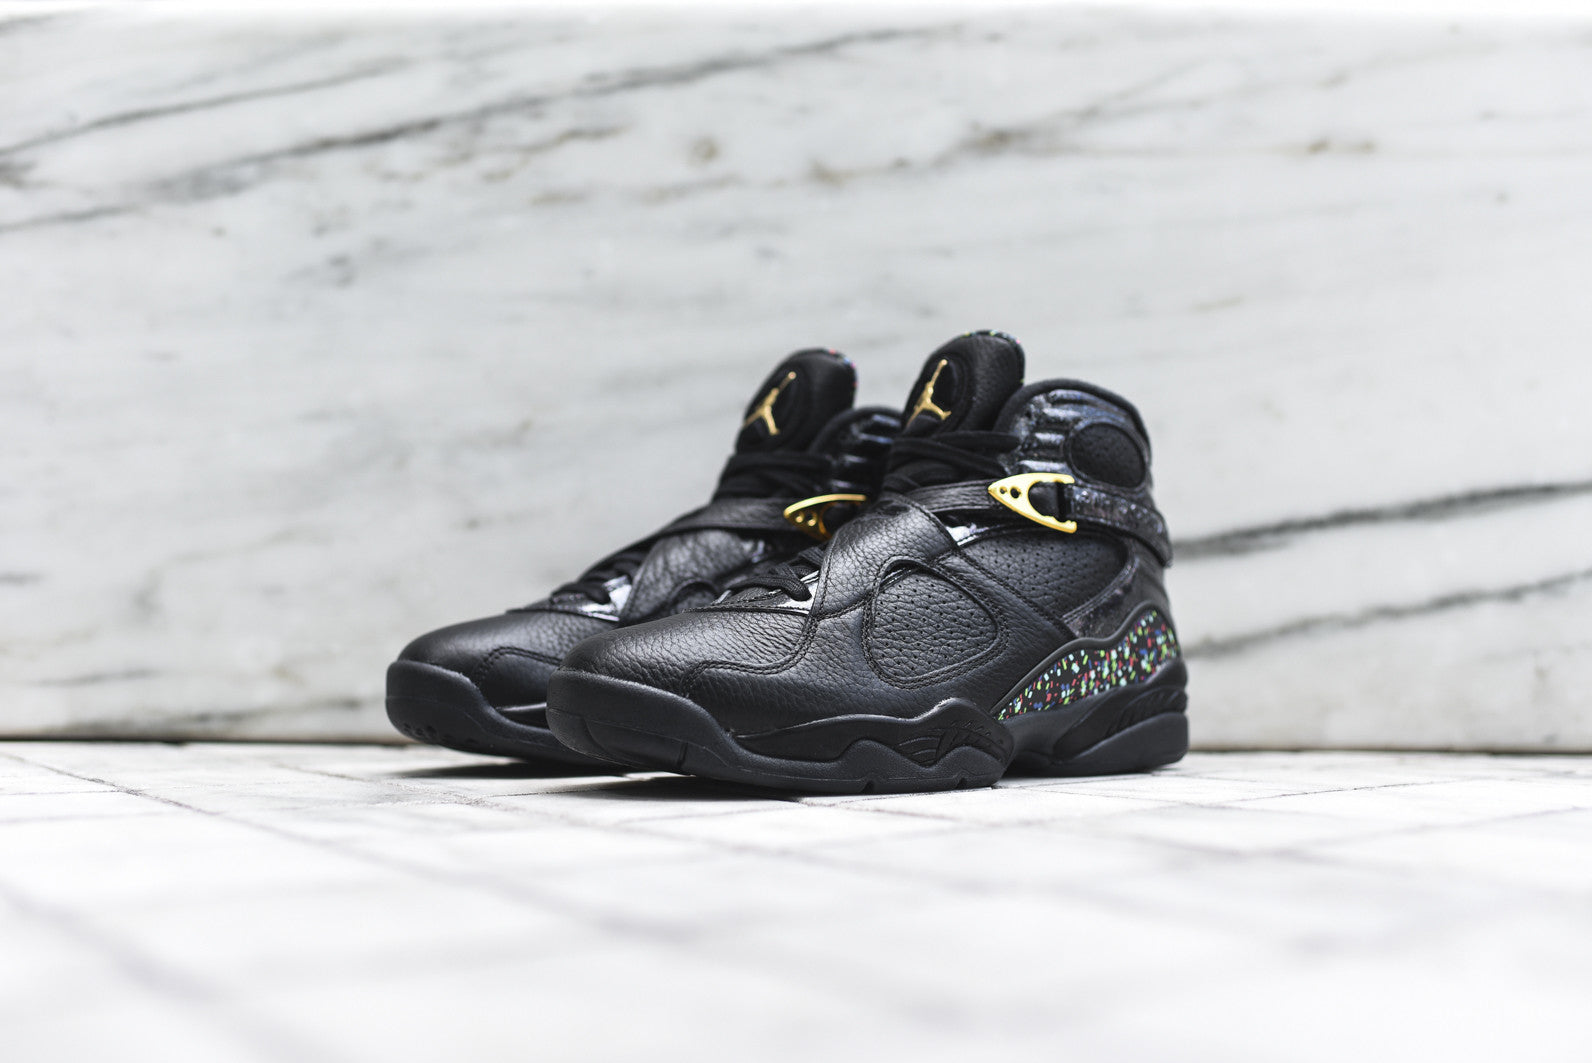 Nike Air Jordan 8 Retro - Confetti